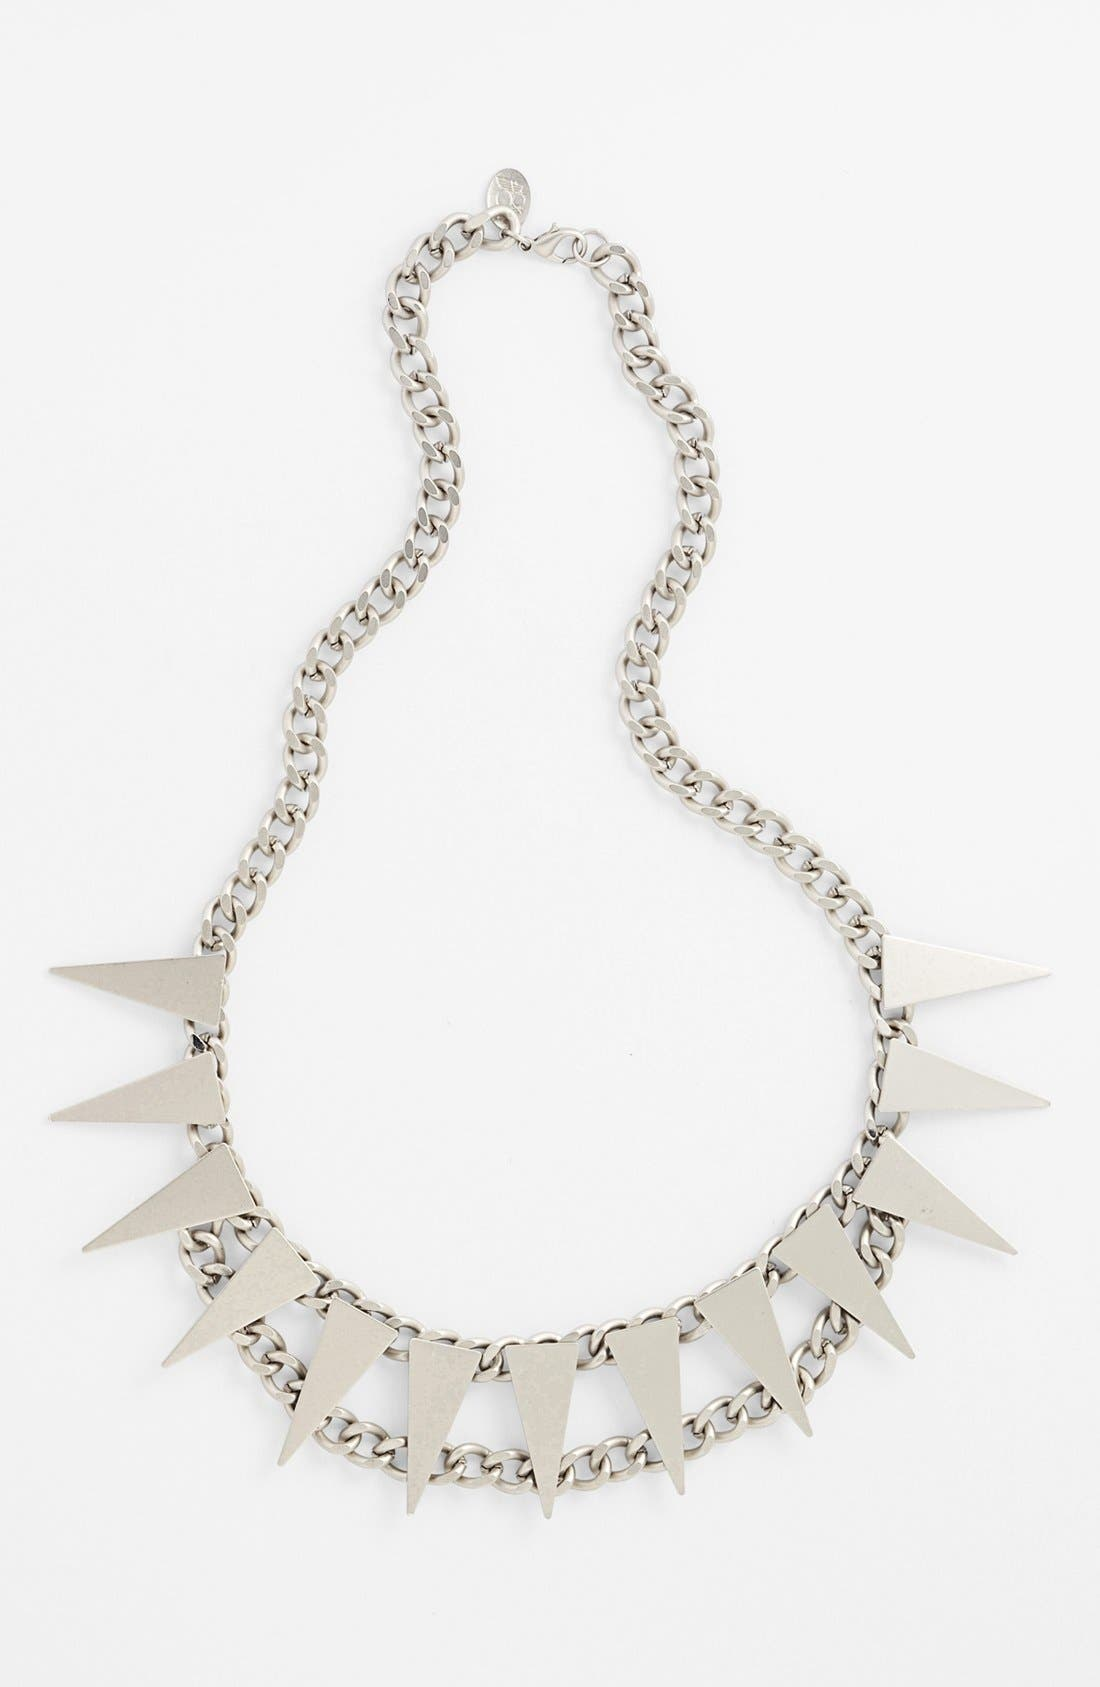 Main Image - 8 Other Reasons 'Morning After' Spike Necklace